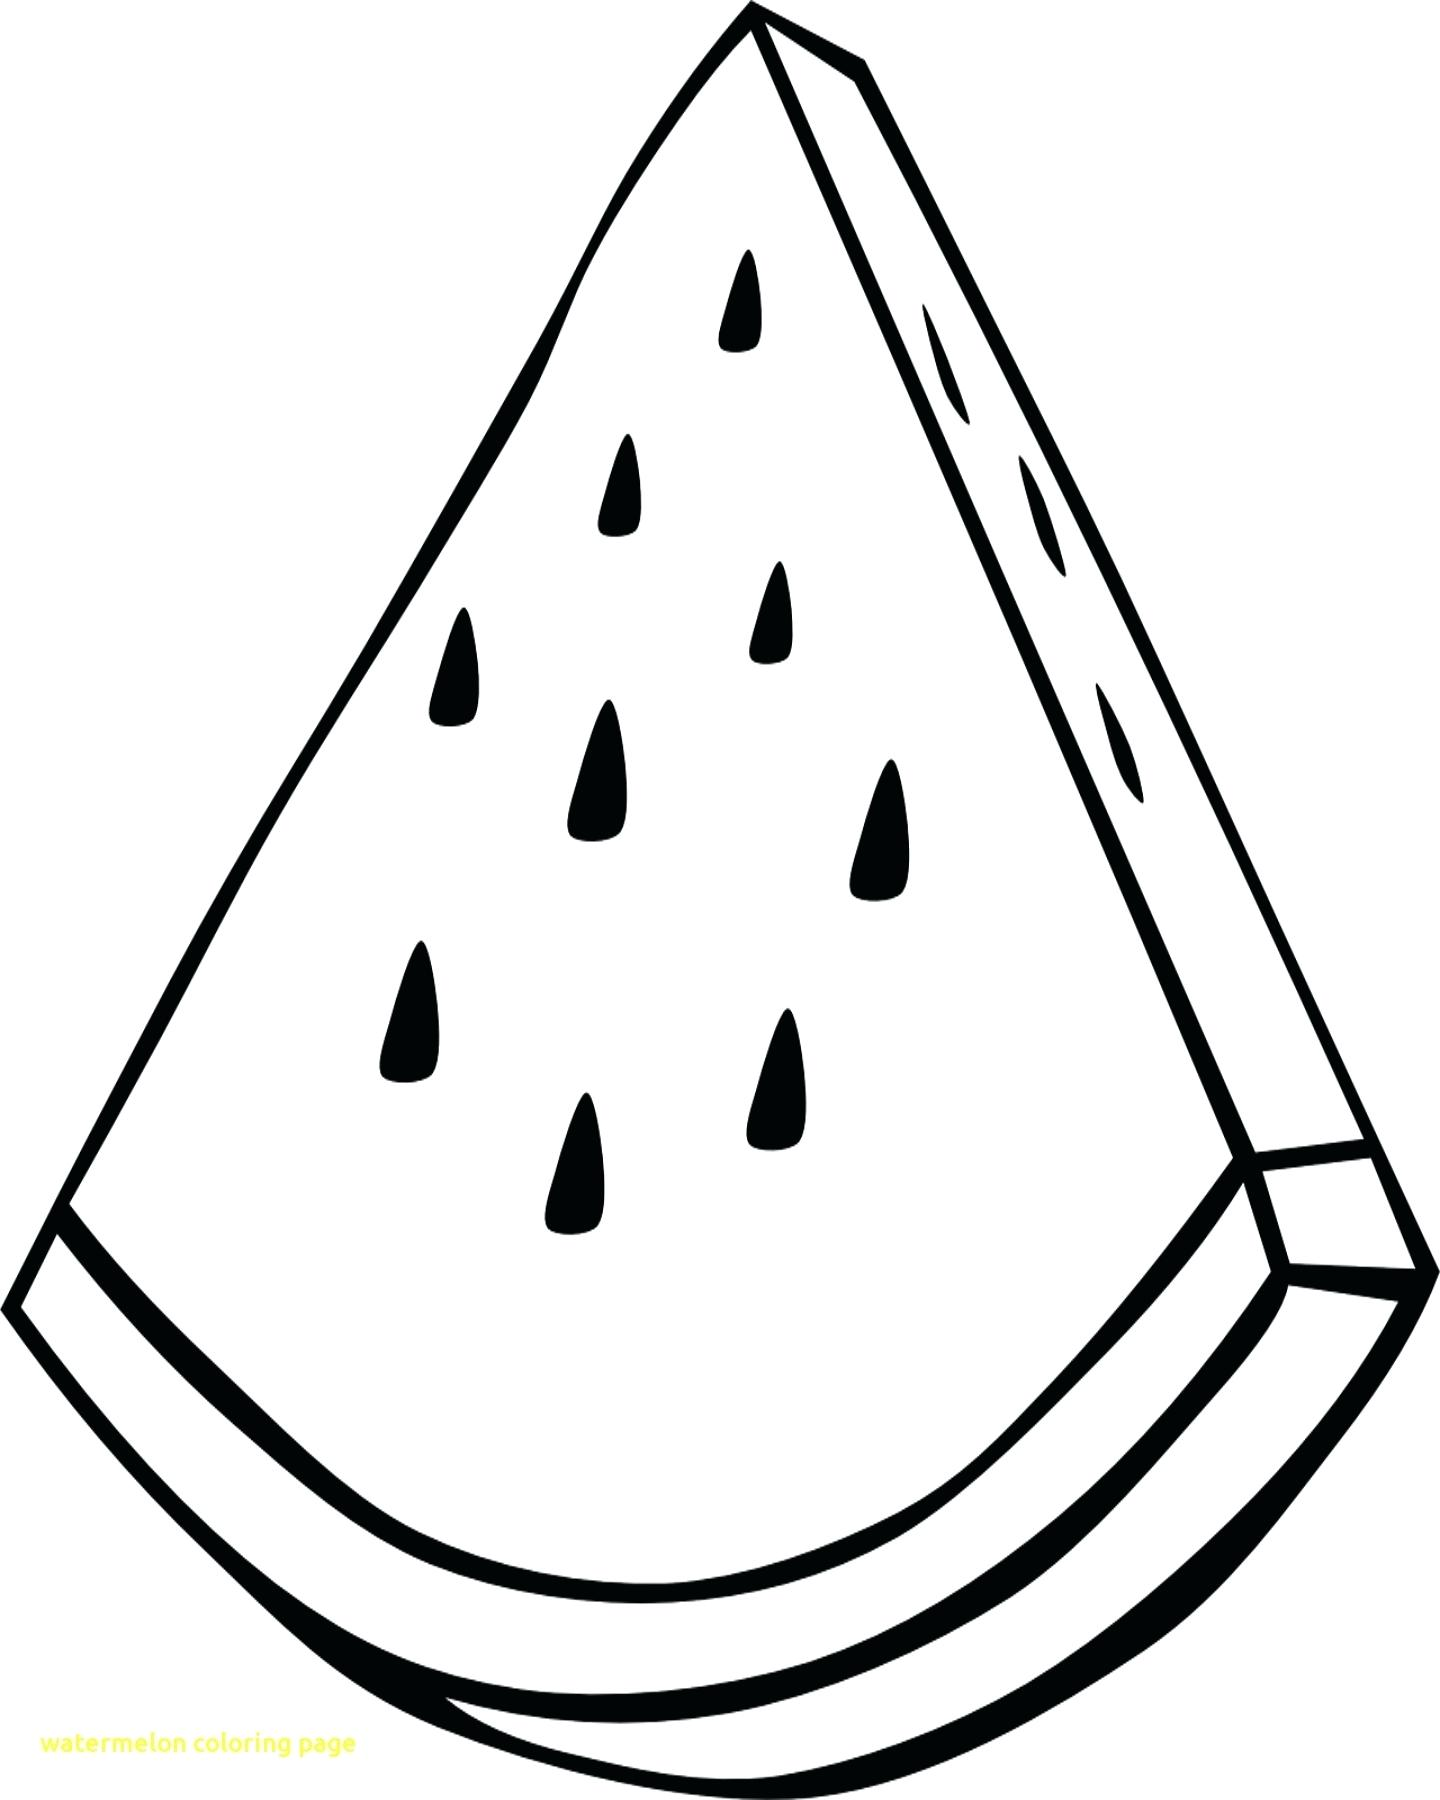 1440x1800 Coloring Pencil Coloring Page Watermelon With Cool. Pencil